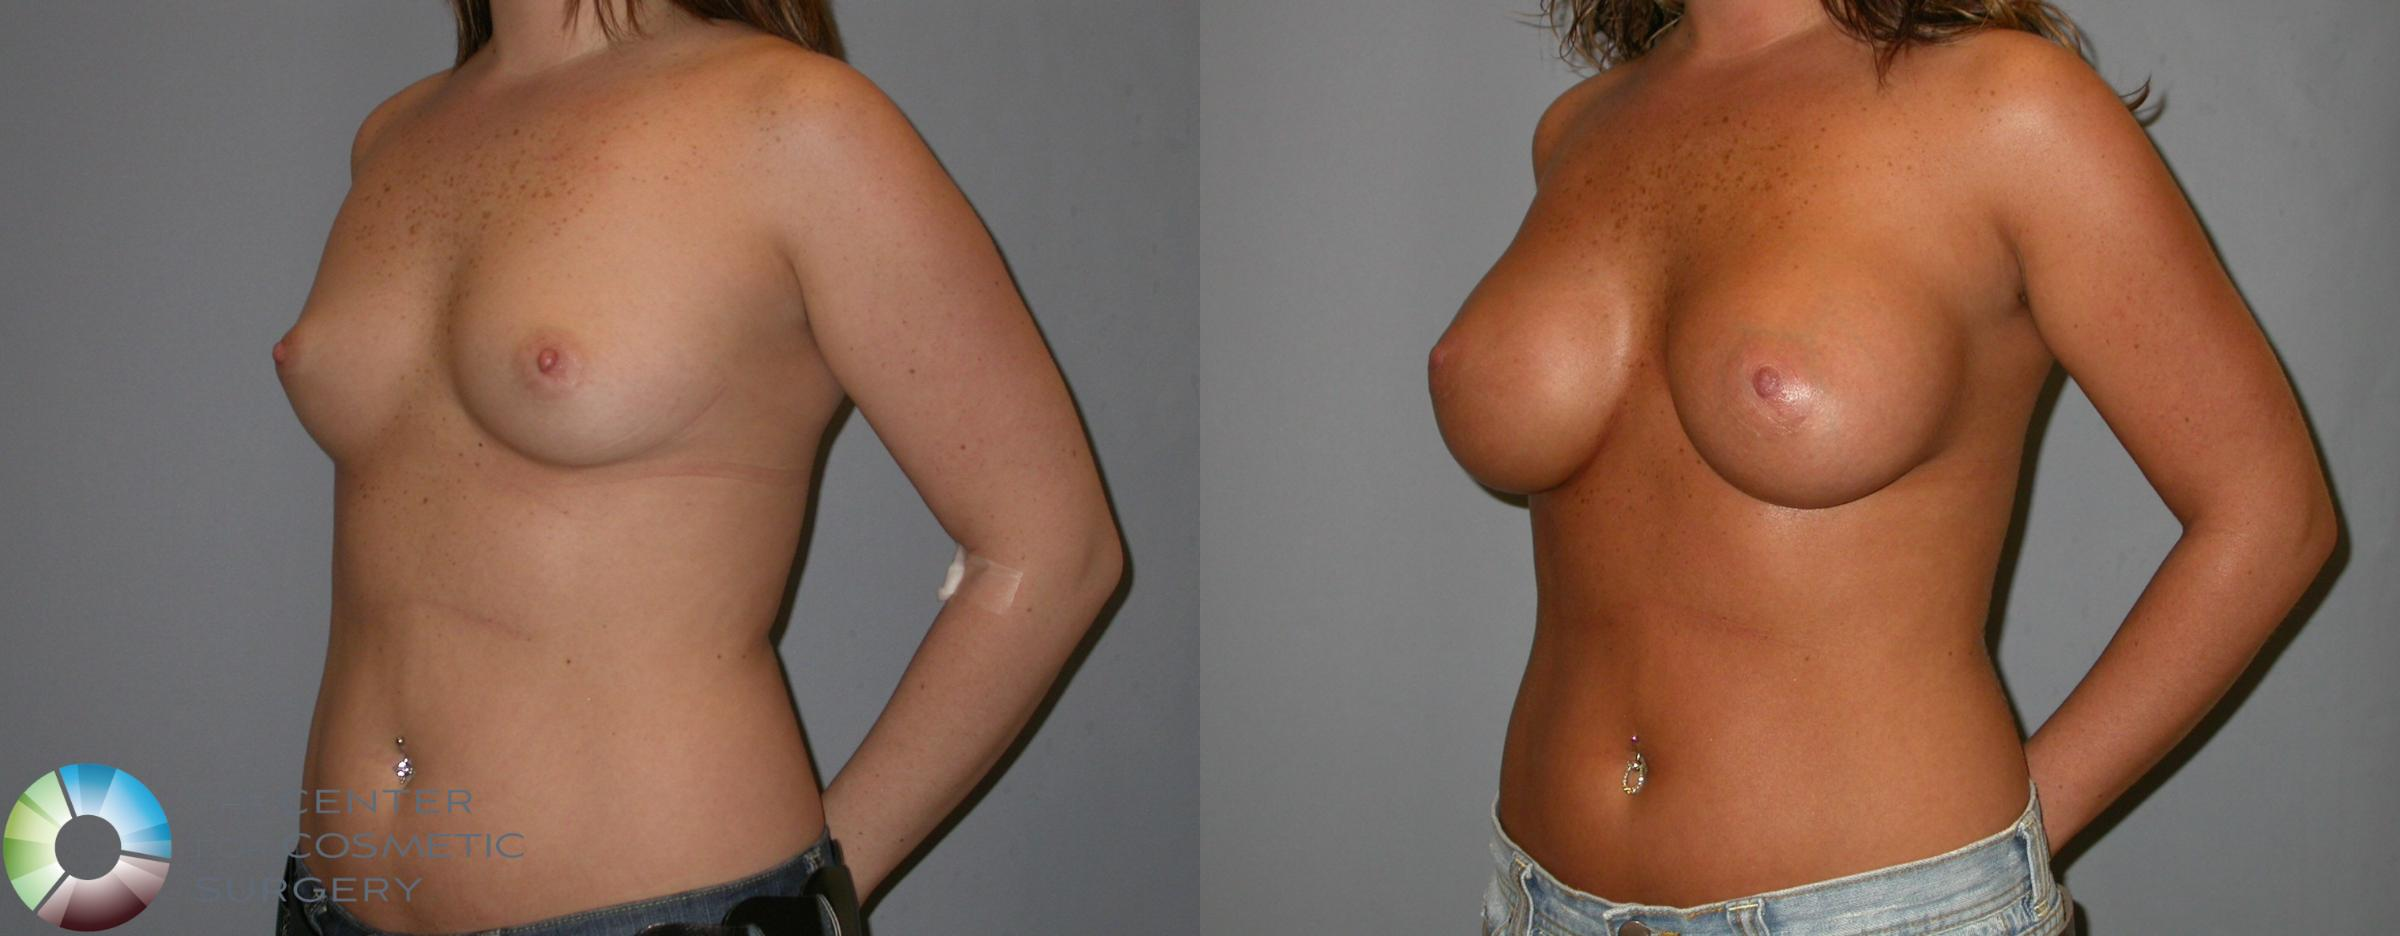 Breast Augmentation Case 139 Before & After View #1 | Golden, CO | The Center for Cosmetic Surgery